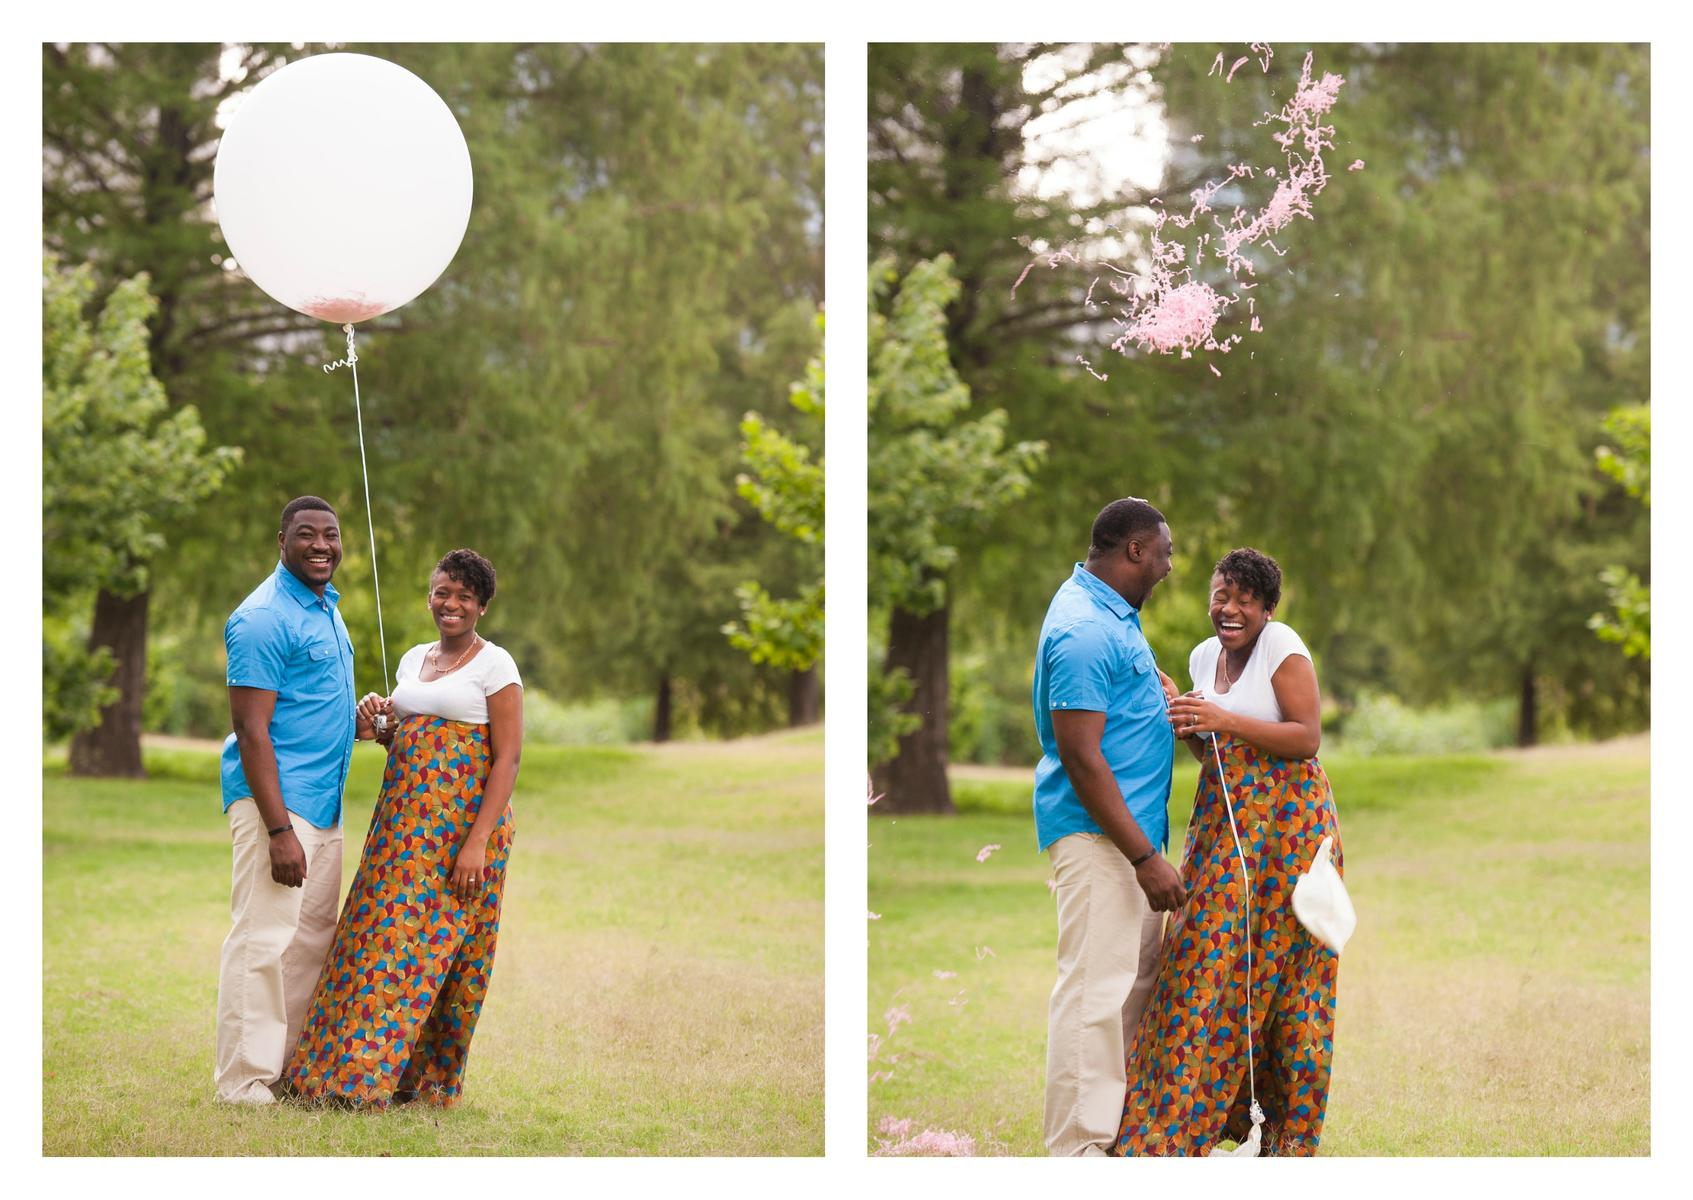 Gender Reveal Ideas: 10 Cute Ways Expectant Couples Shared the News